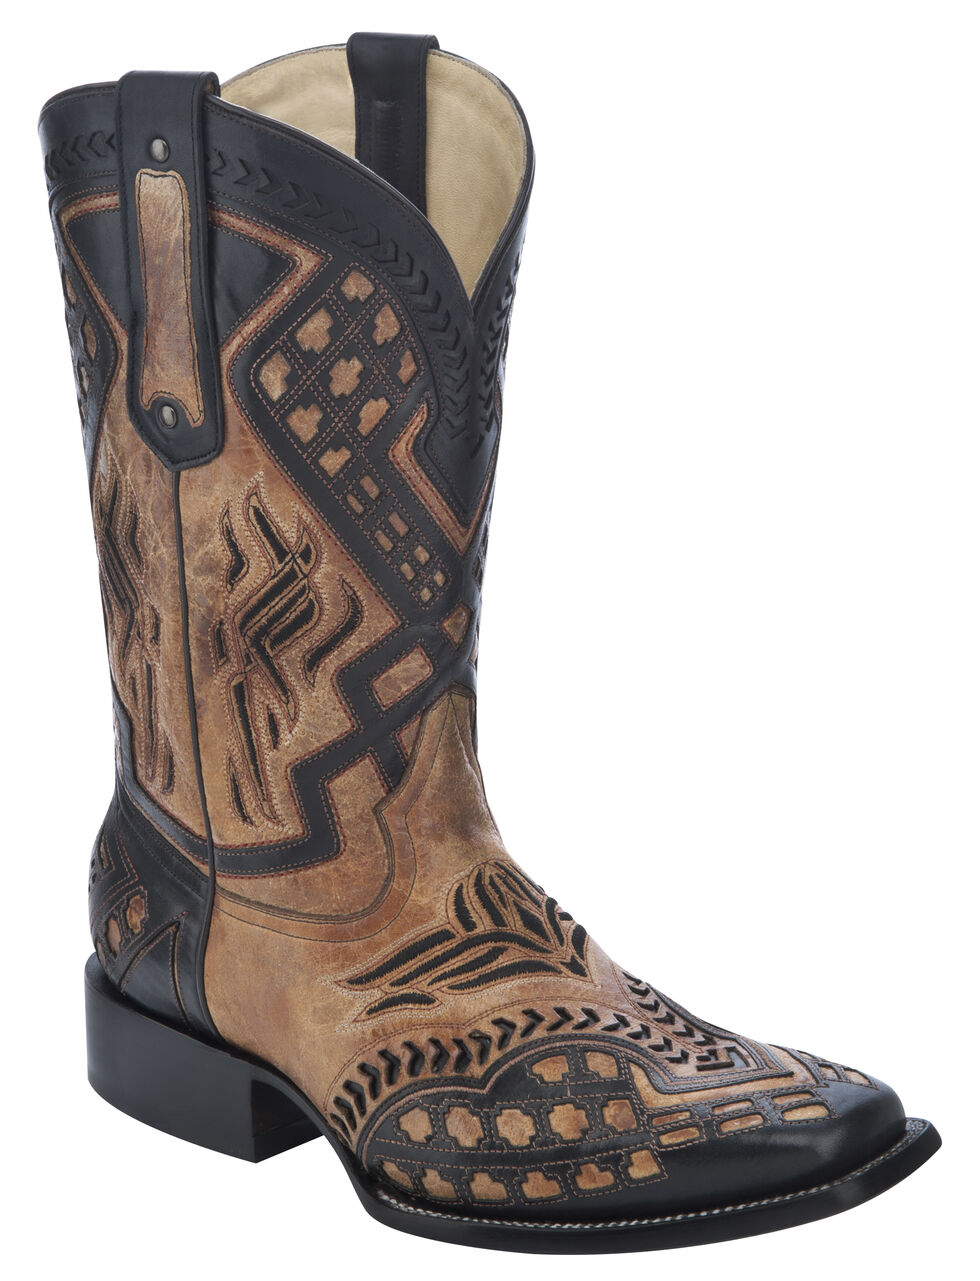 Corral Overlay Cowboy Boots - Square Toe, Antique Saddle, hi-res